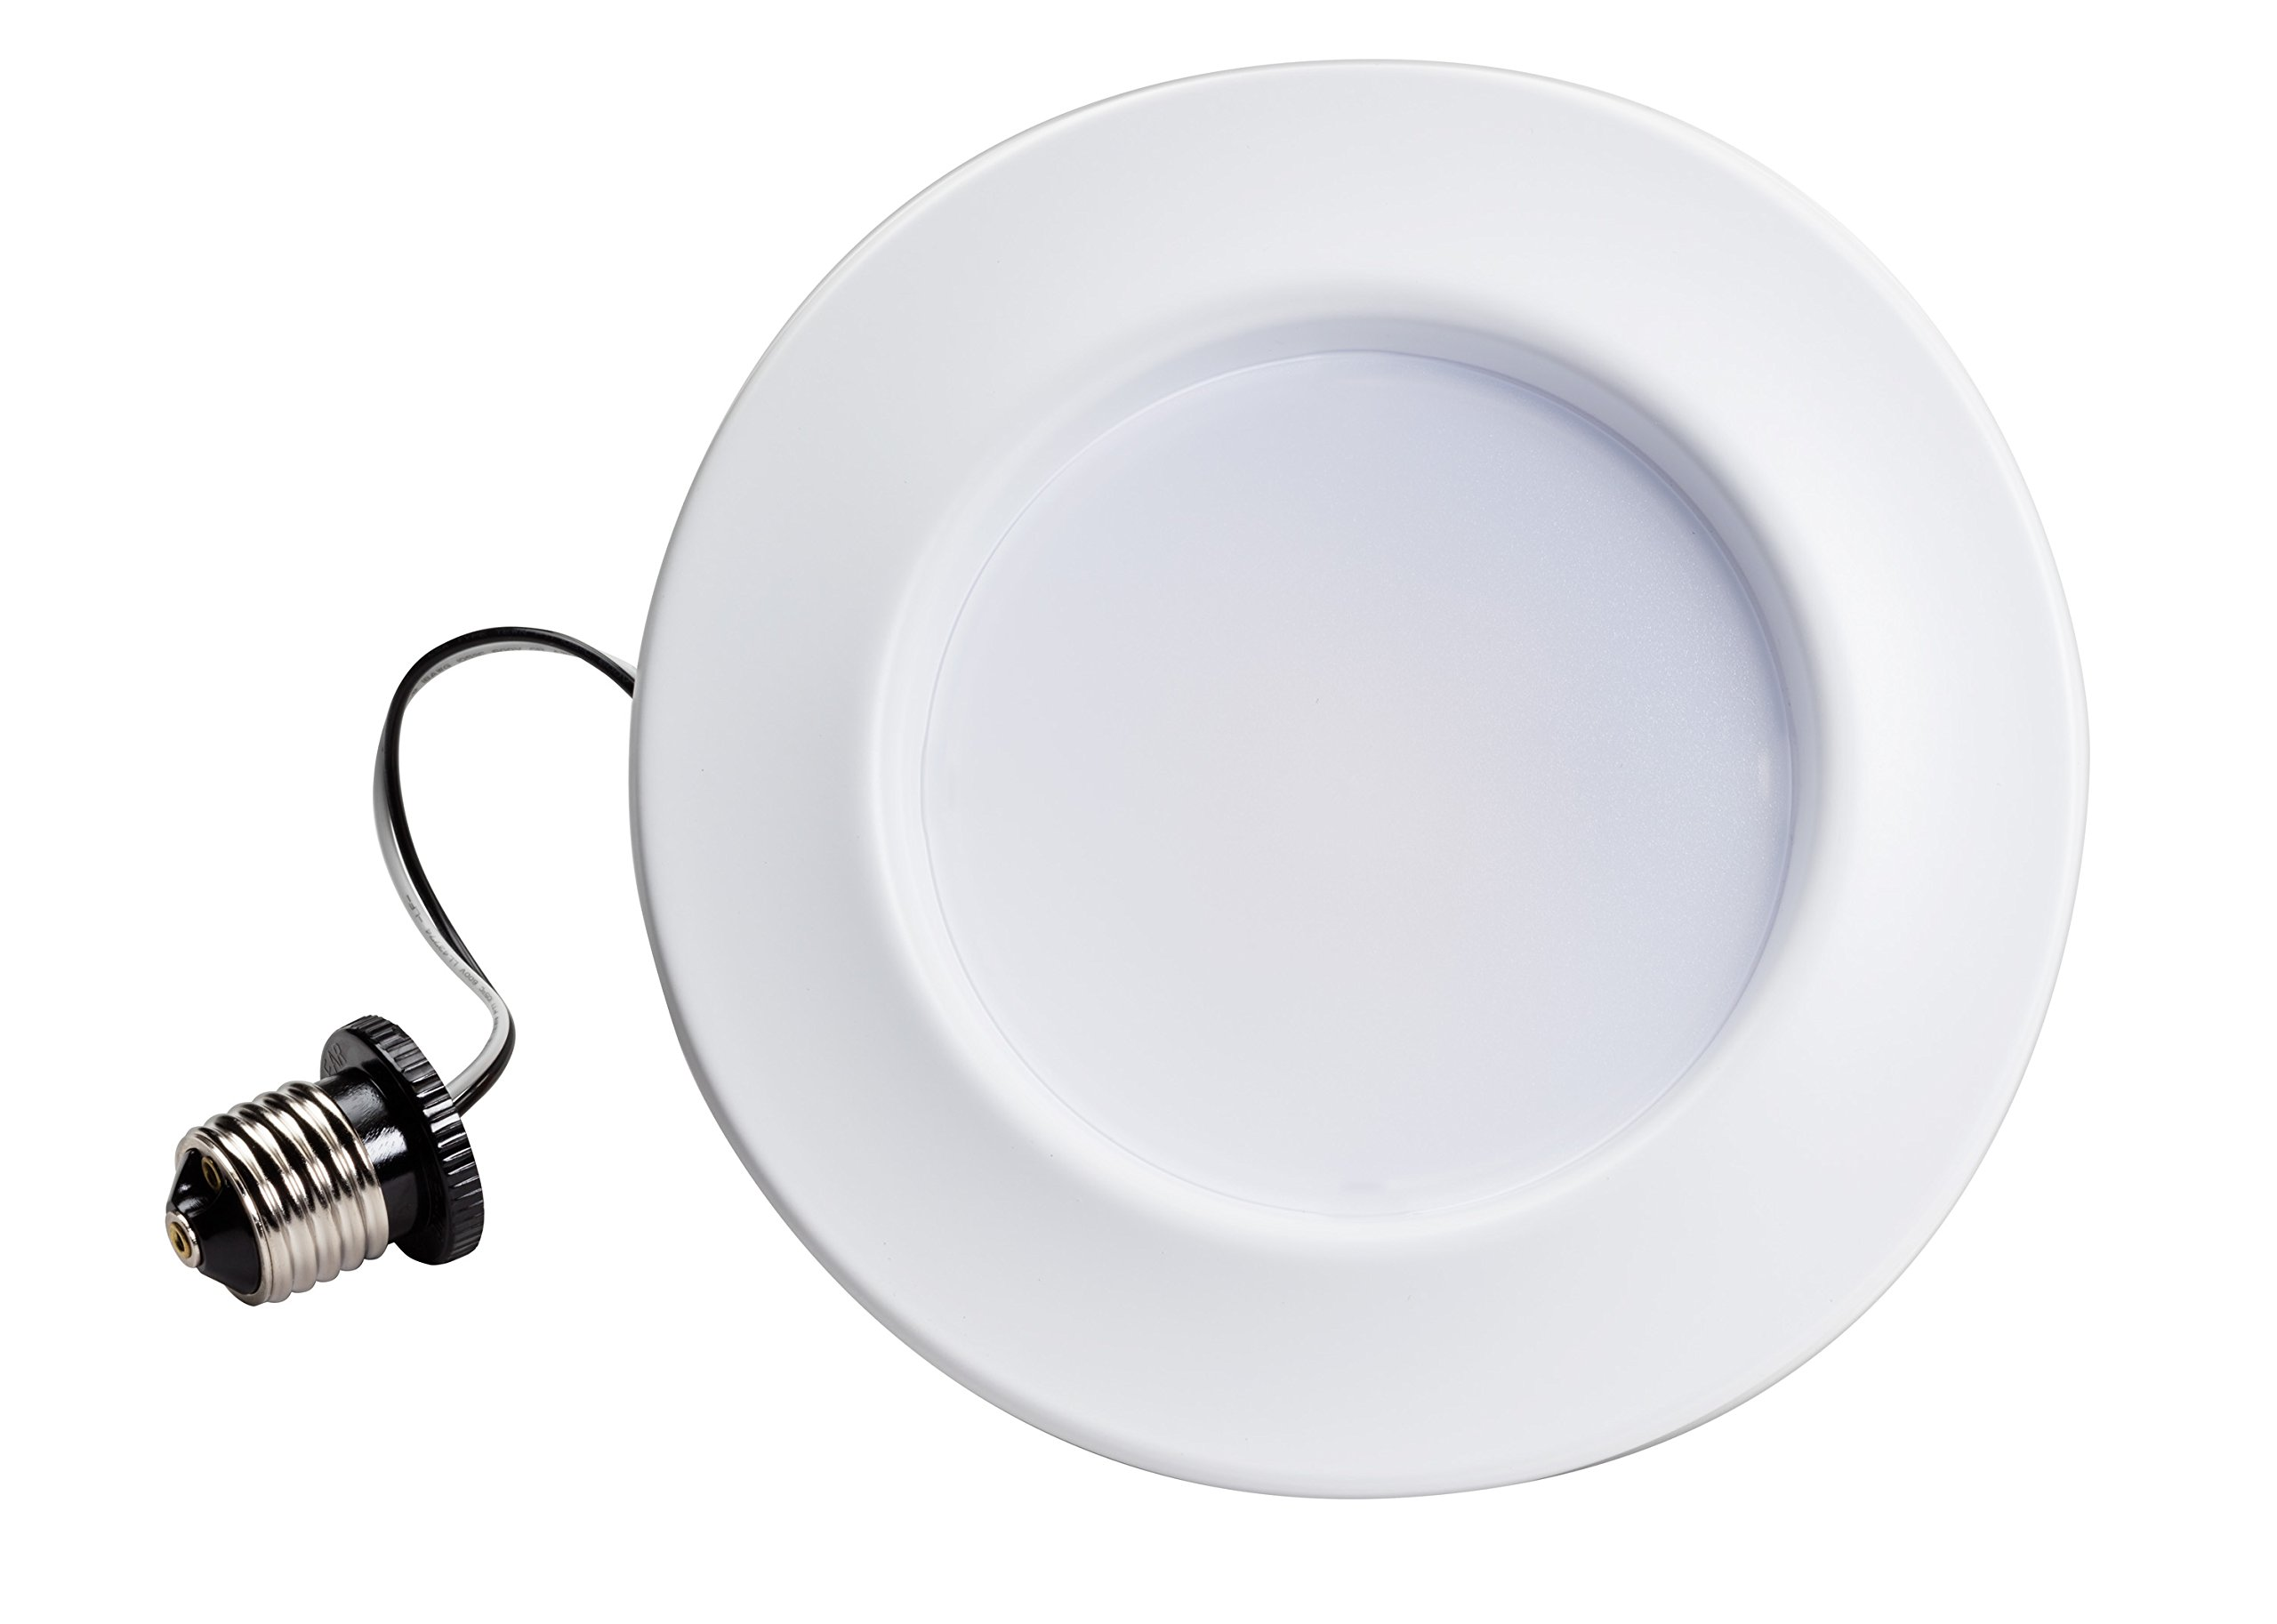 Philips 801274 65W Equivalent Dimmable Daylight LED Downlight, 5-6'' by Philips (Image #1)